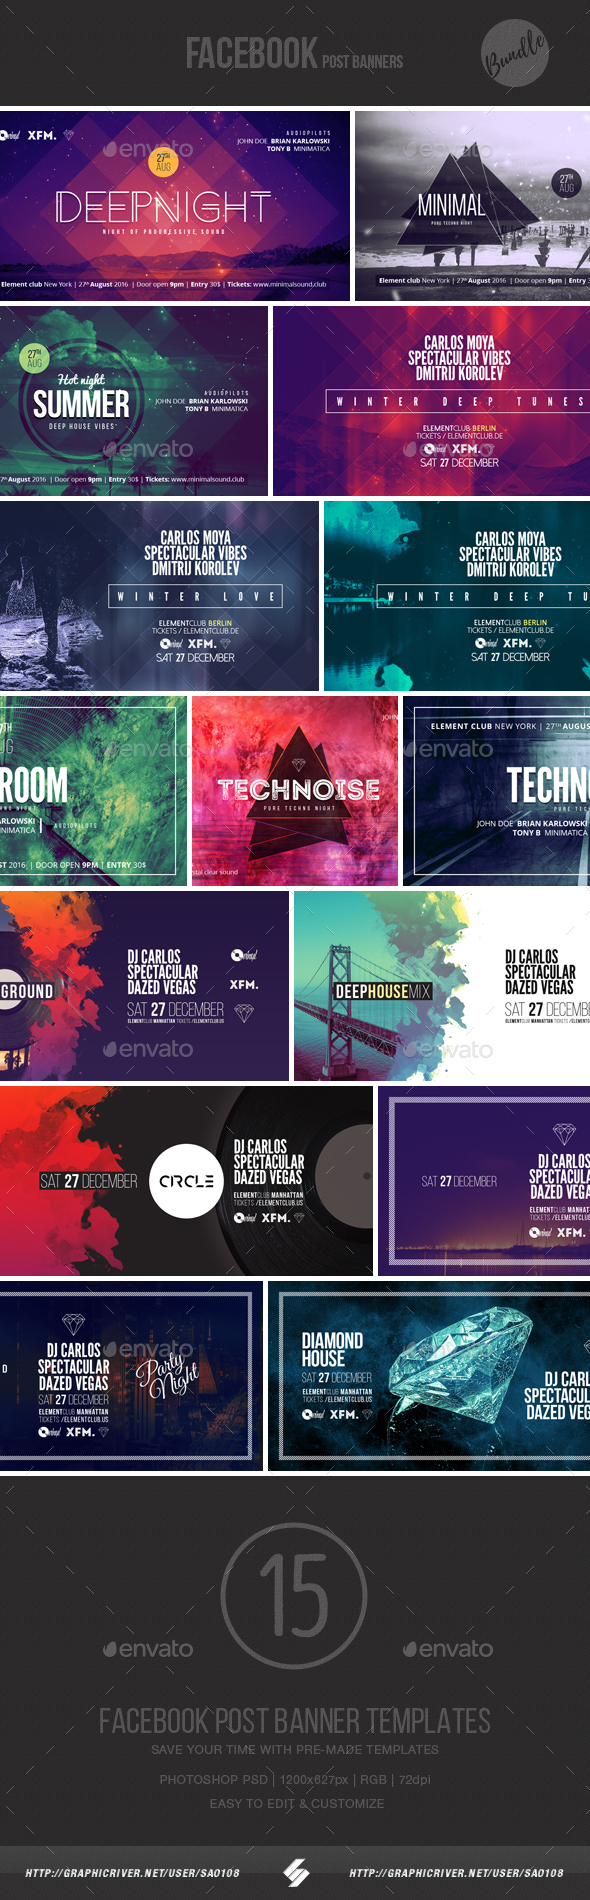 facebook posting schedule template - electronic music event facebook post banner templates